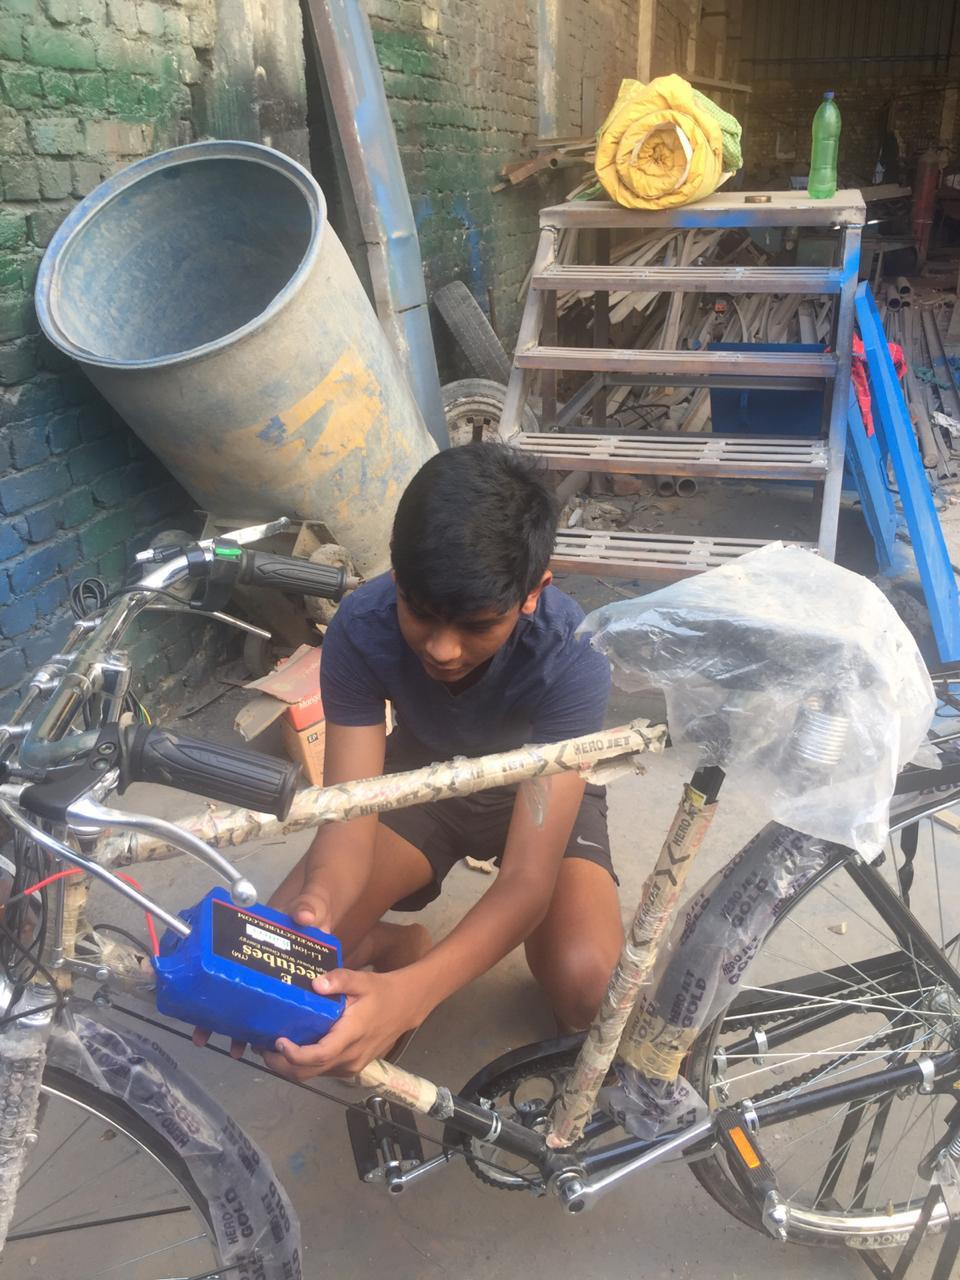 A high school student from India at the warehouse, working on a bicycle.